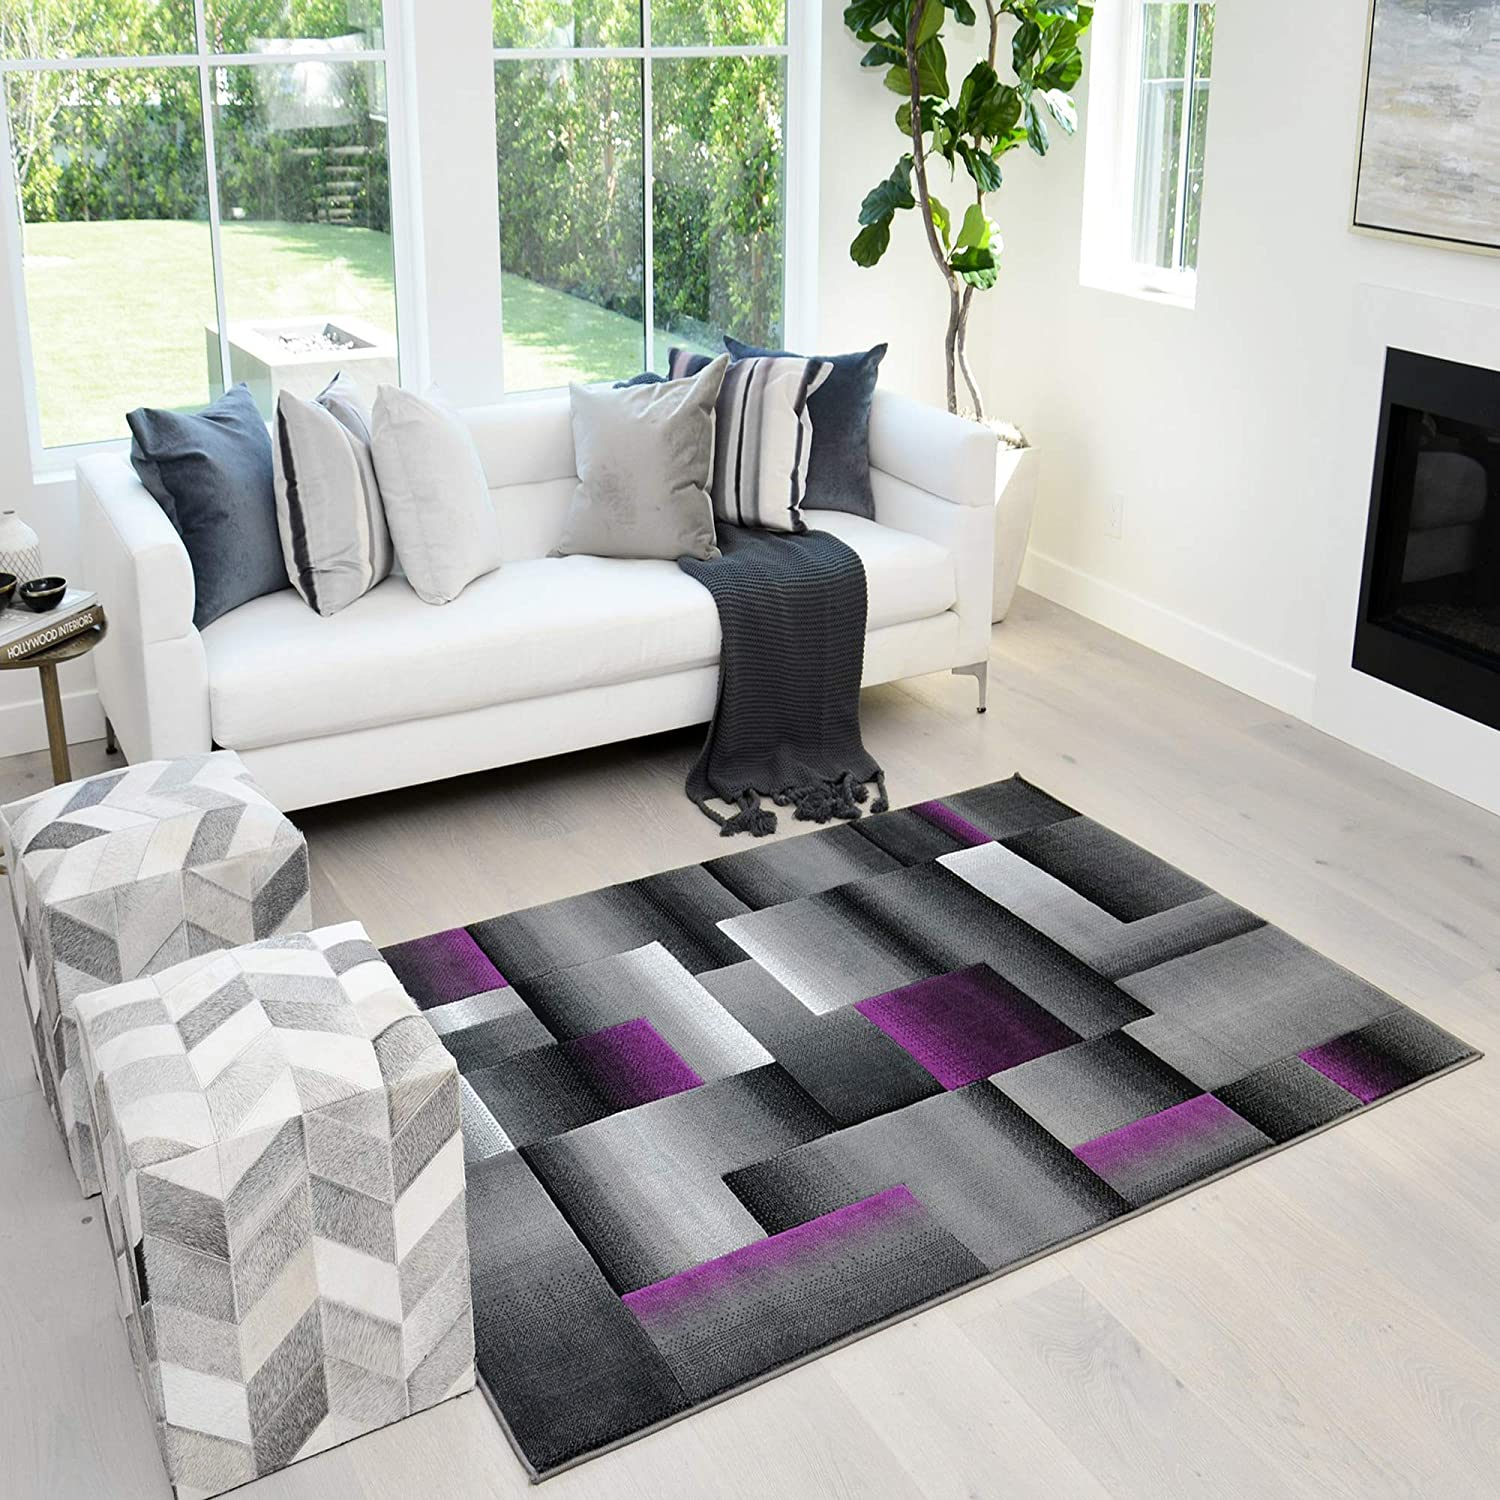 Amazon Com Handcraft Rugs Purple And Gray Abstract Geometric Modern Squares Pattern Area Rug 5 Ft By 7 Ft Kitchen Dining